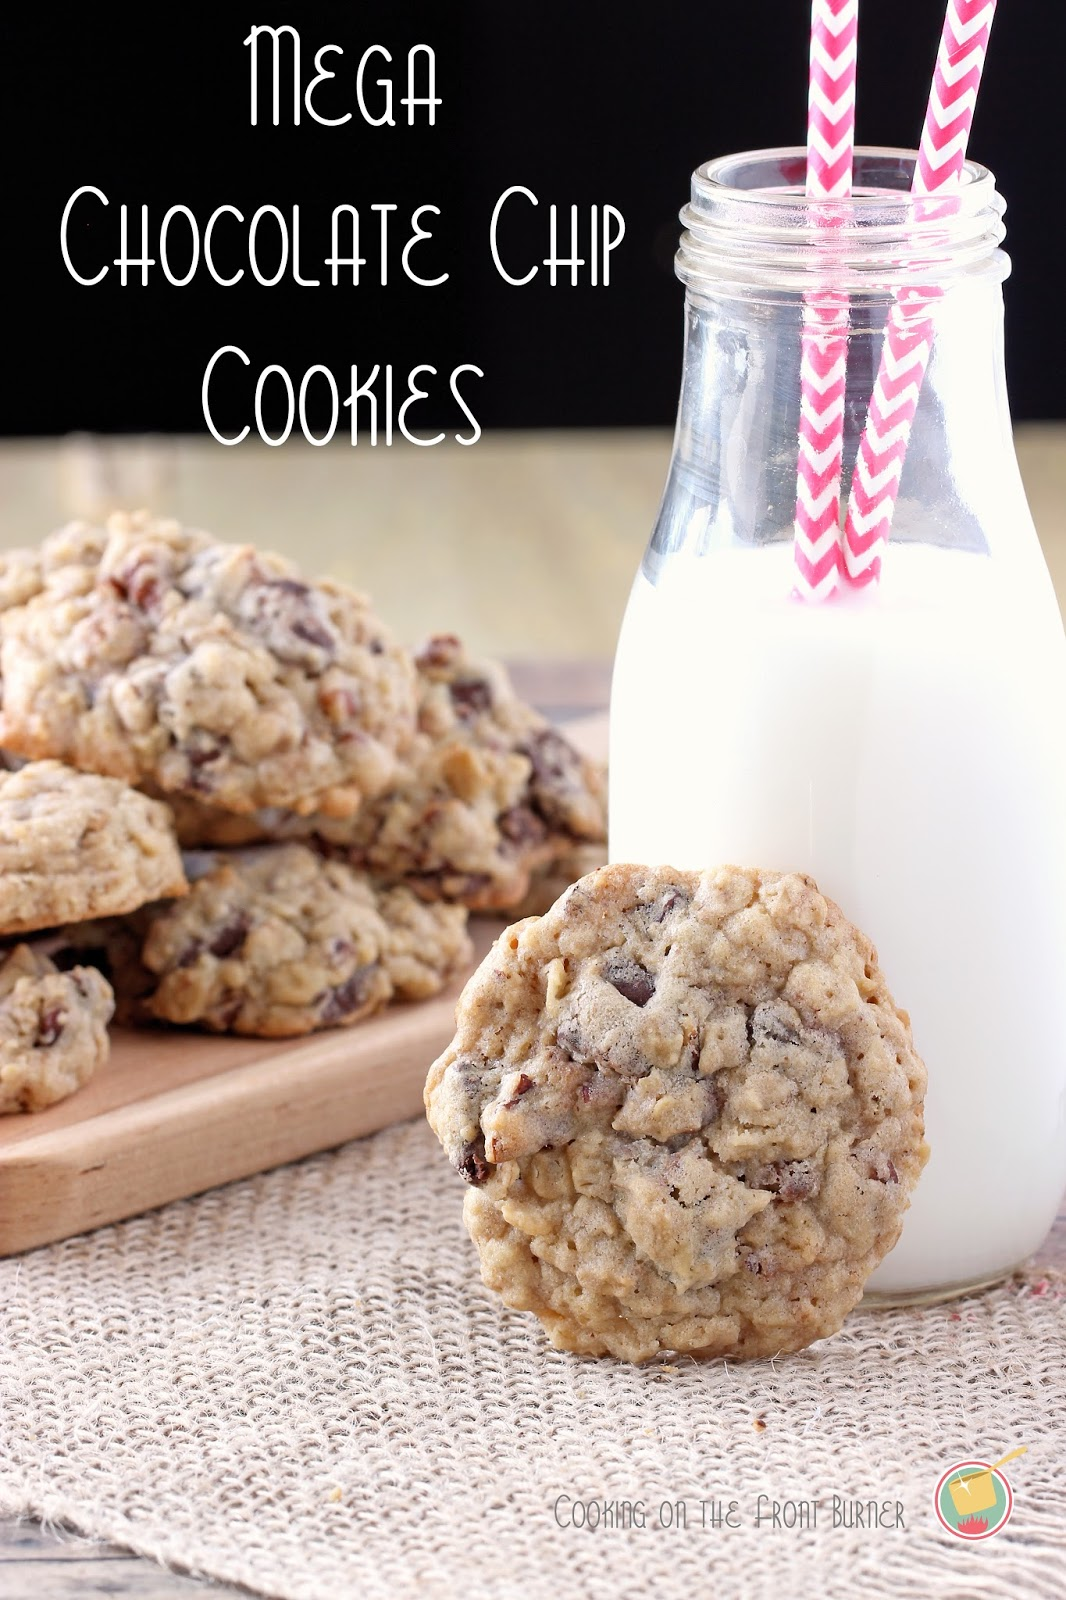 Mega Chocolate Chip Cookies | Cooking on the Front Burner #dessert #nestles